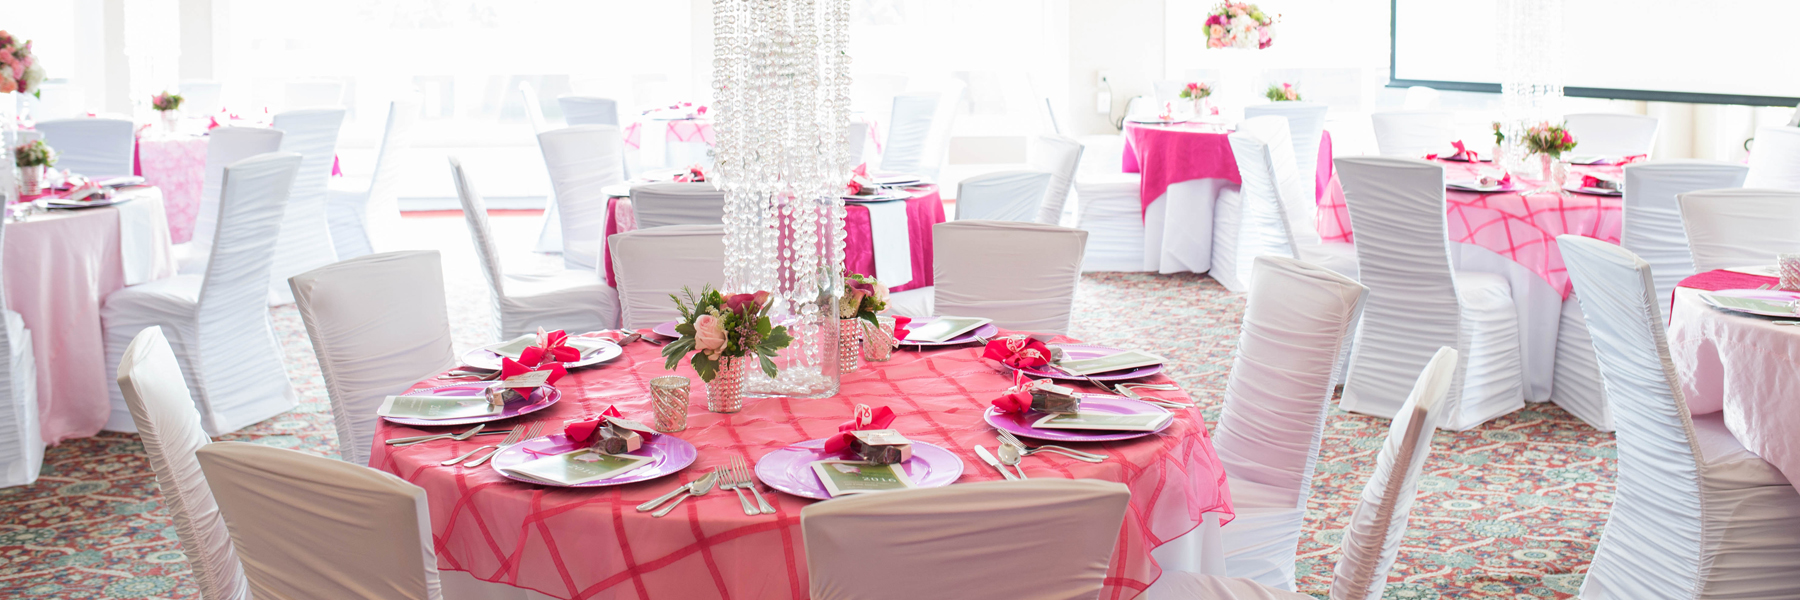 chair cover rentals rockford il massage with foot rental catalog best events catering